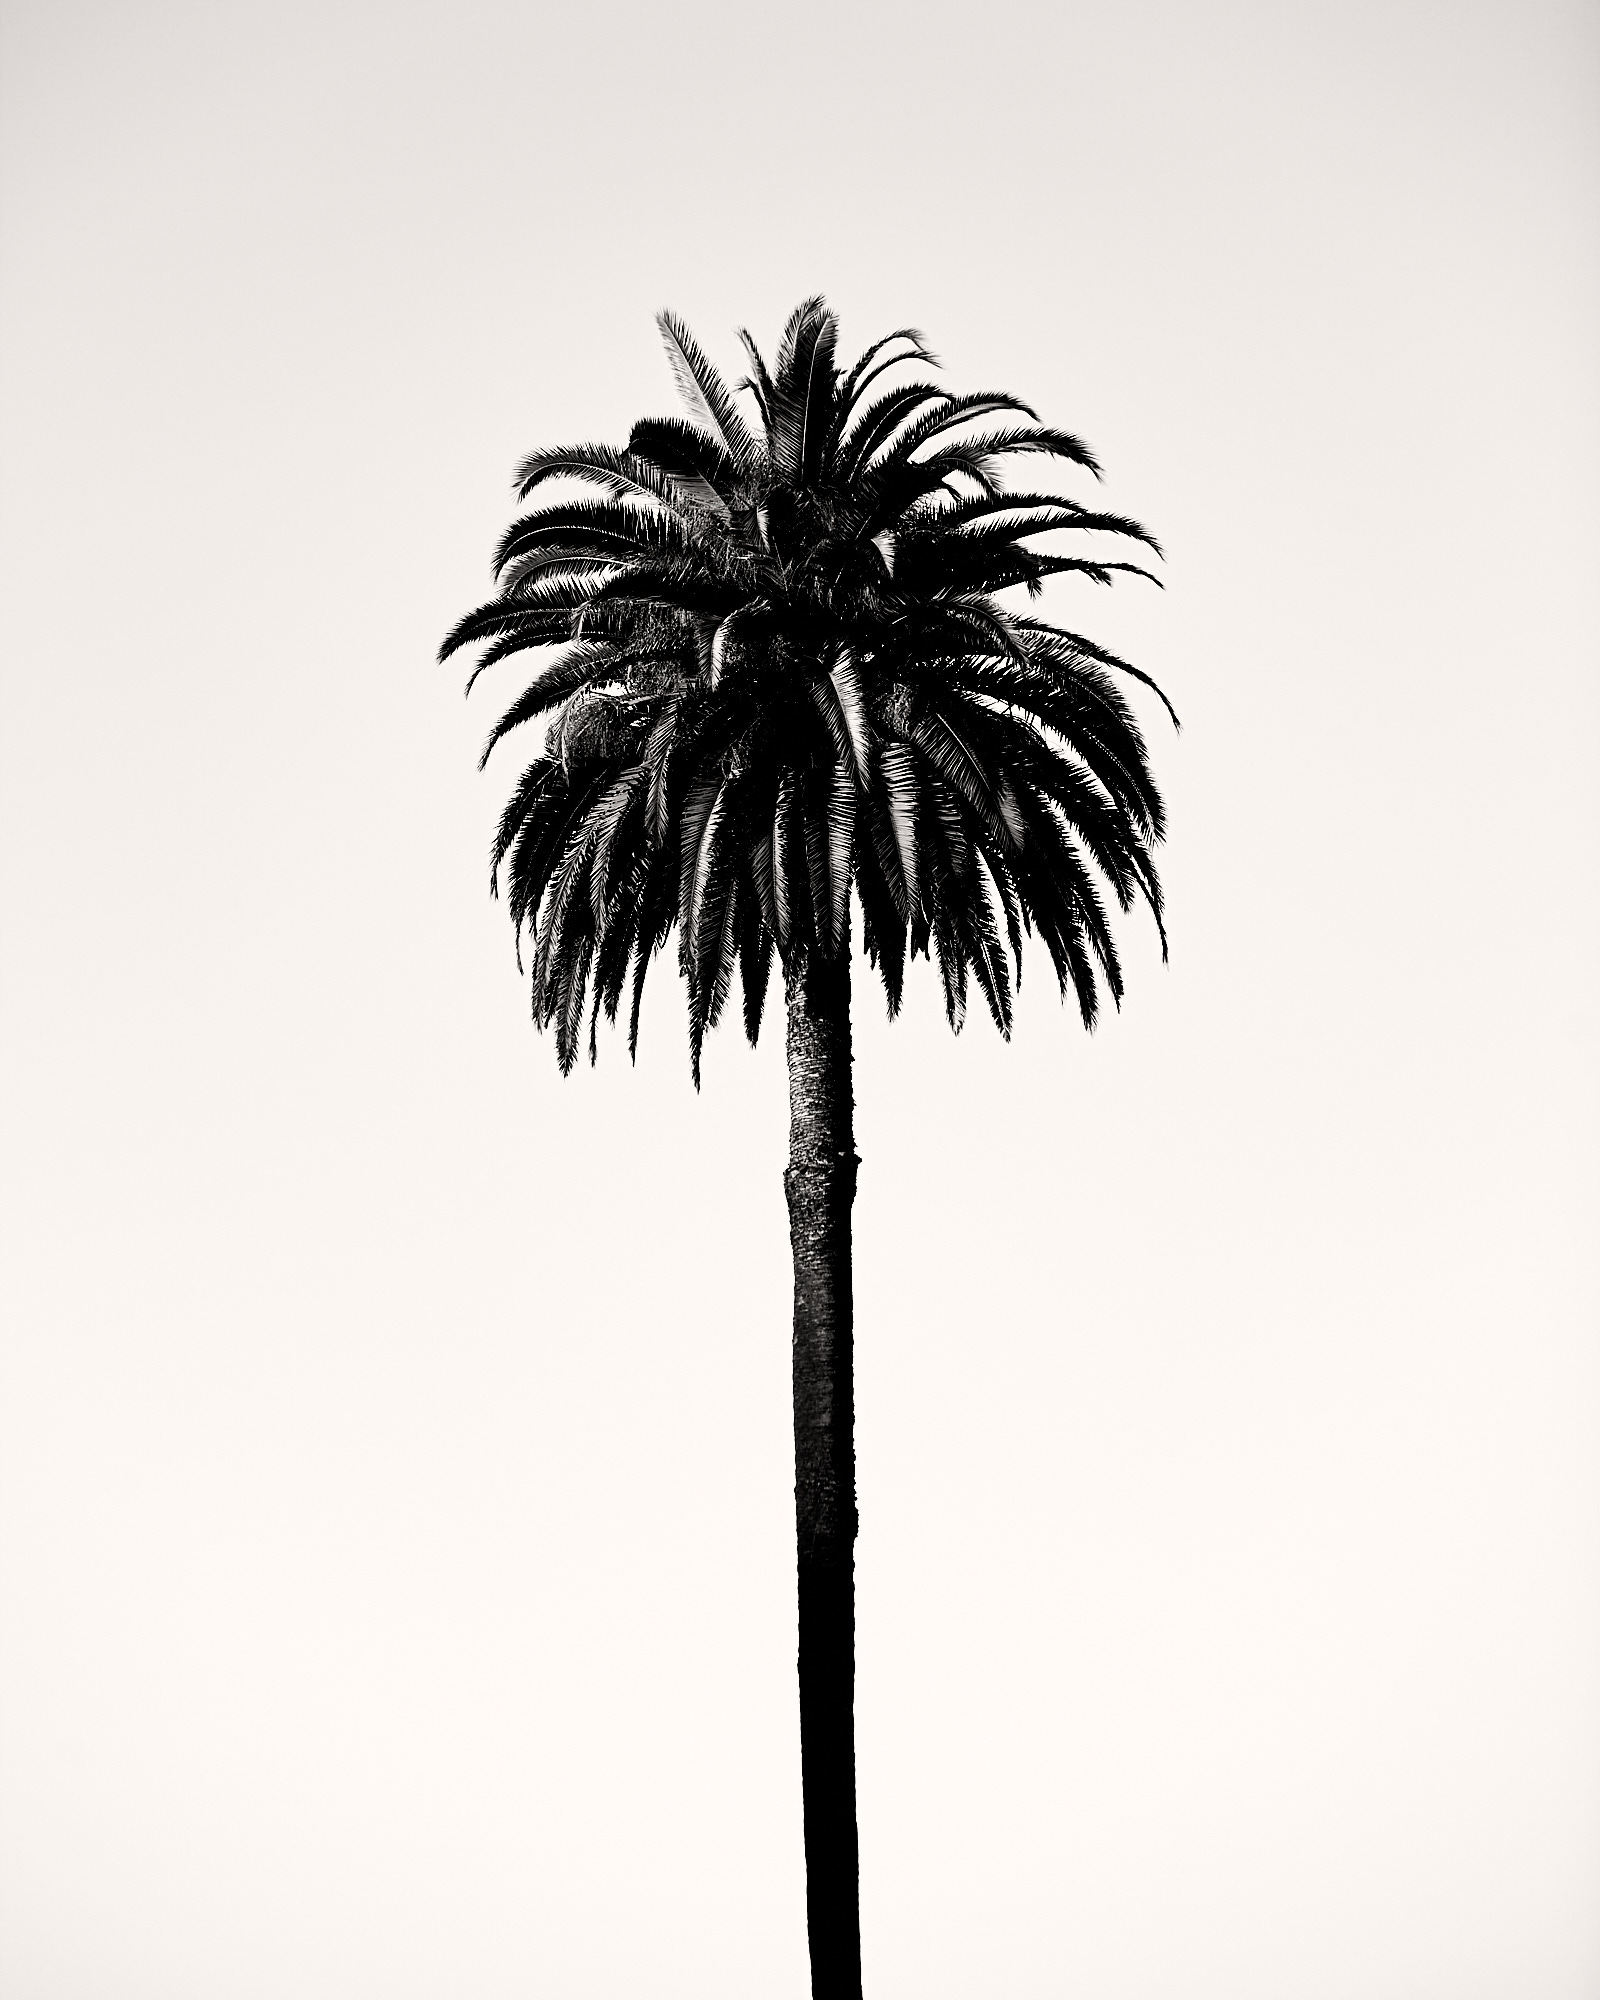 Exley_200206_Palm_Tree_001